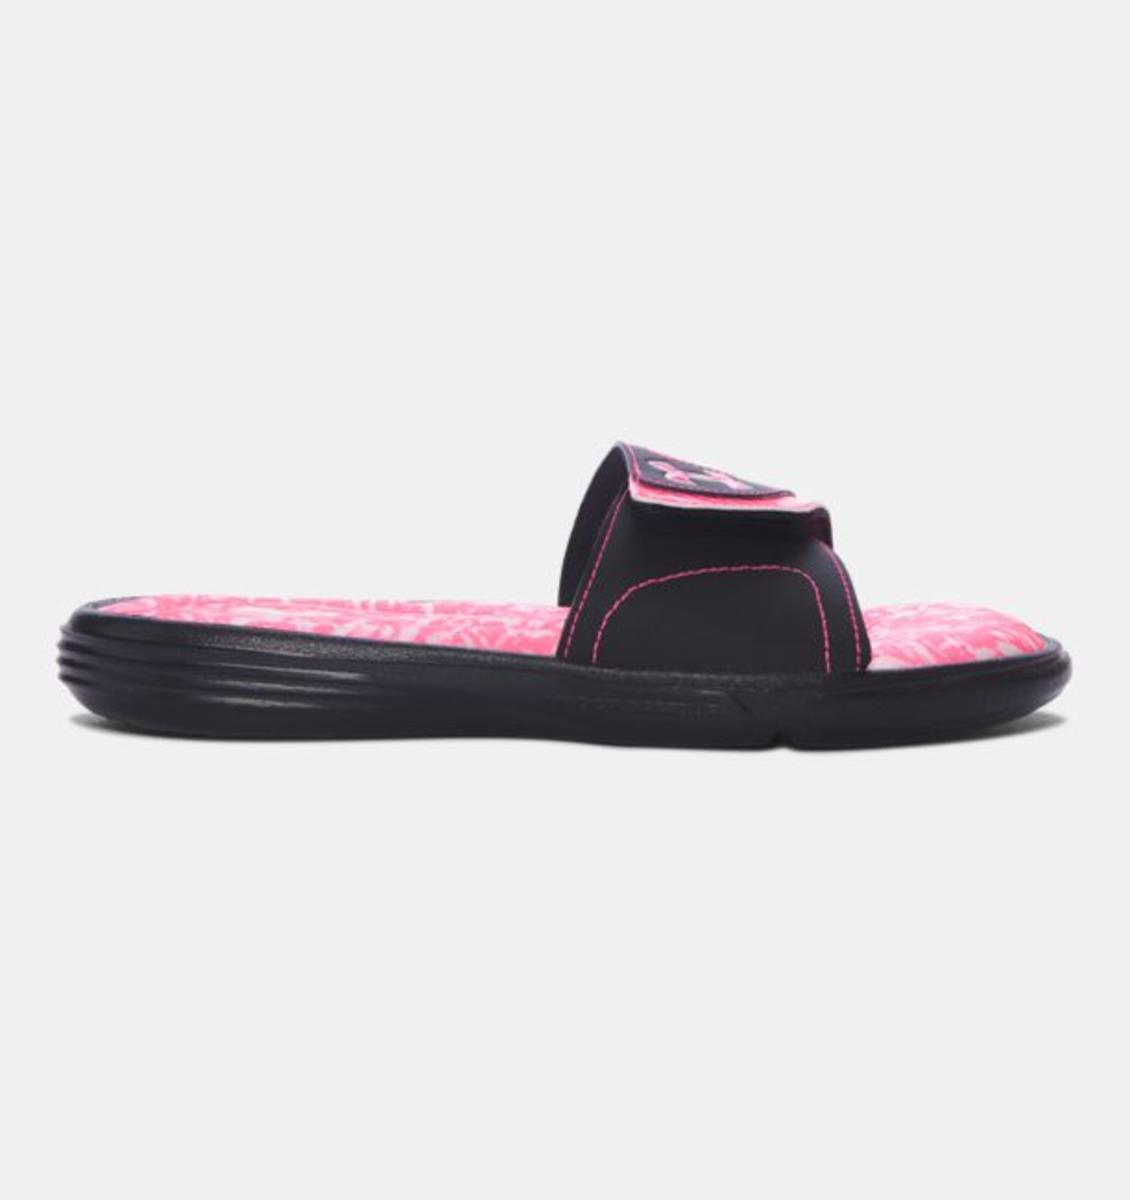 1669088fc Under Armour Women s UA Power in Pink Ignite VII Slides - The ...